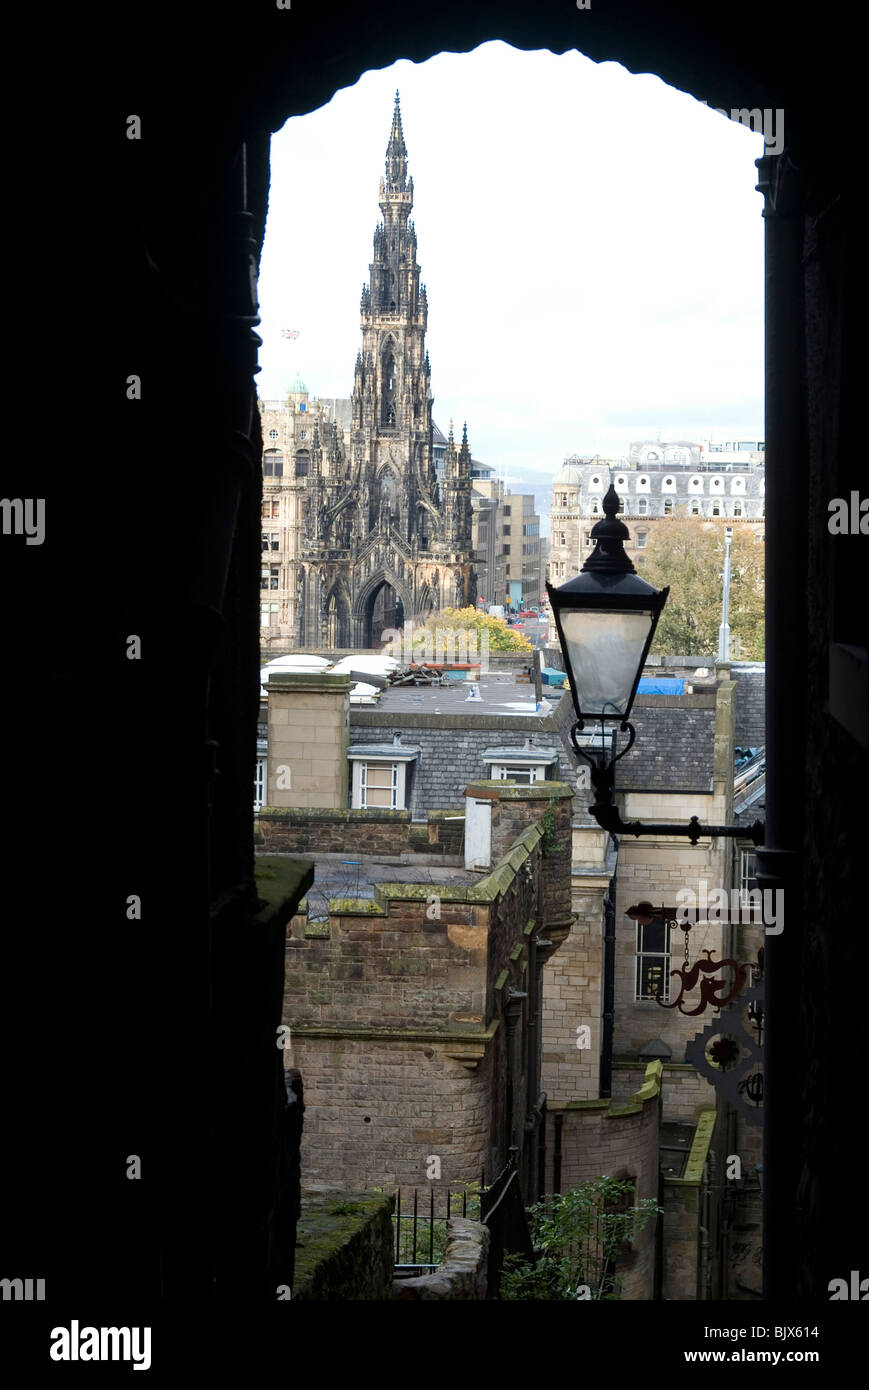 View from the Royal Mile down to the Walter Scott Memorial, Edinburgh, Scotland - Stock Image